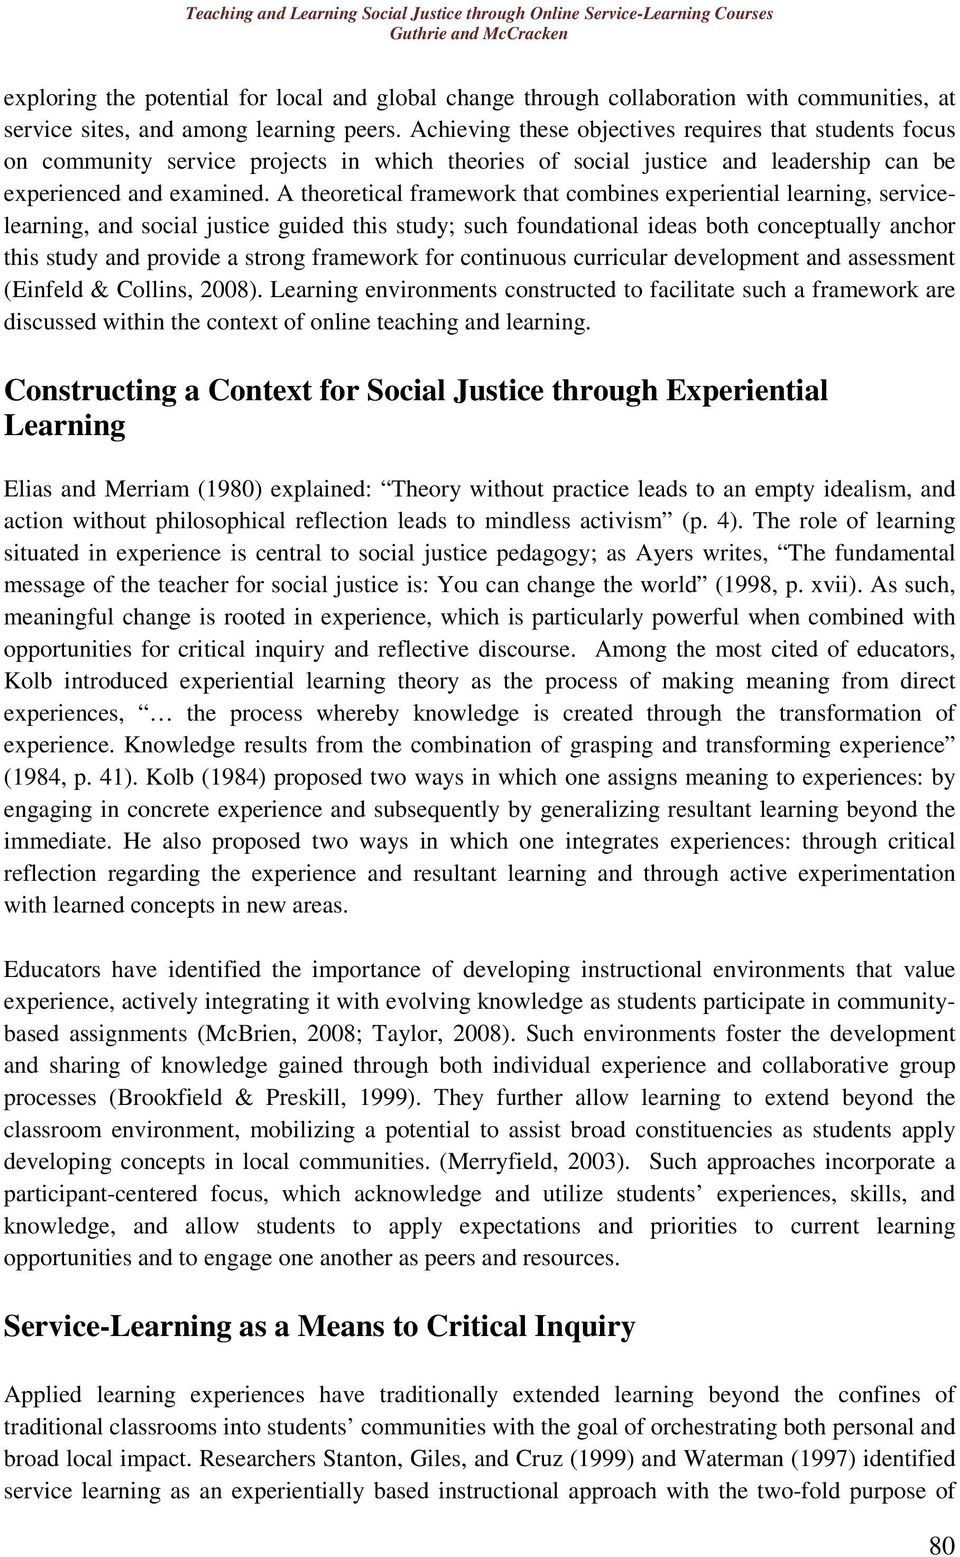 A theoretical framework that combines experiential learning, servicelearning, and social justice guided this study; such foundational ideas both conceptually anchor this study and provide a strong